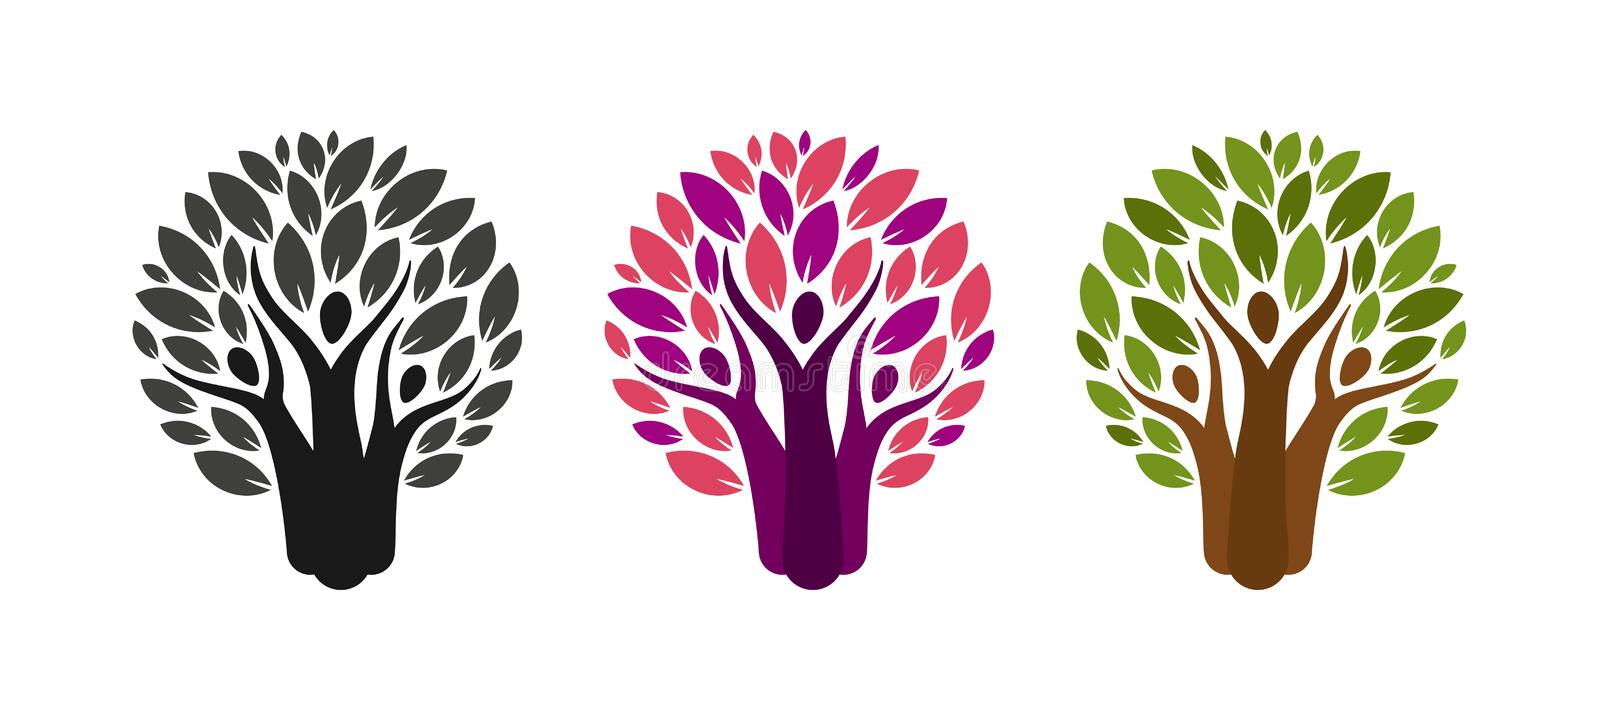 Abstract tree and people logo. Ecology, environment, nature label or icon. Vector illustration vector illustration